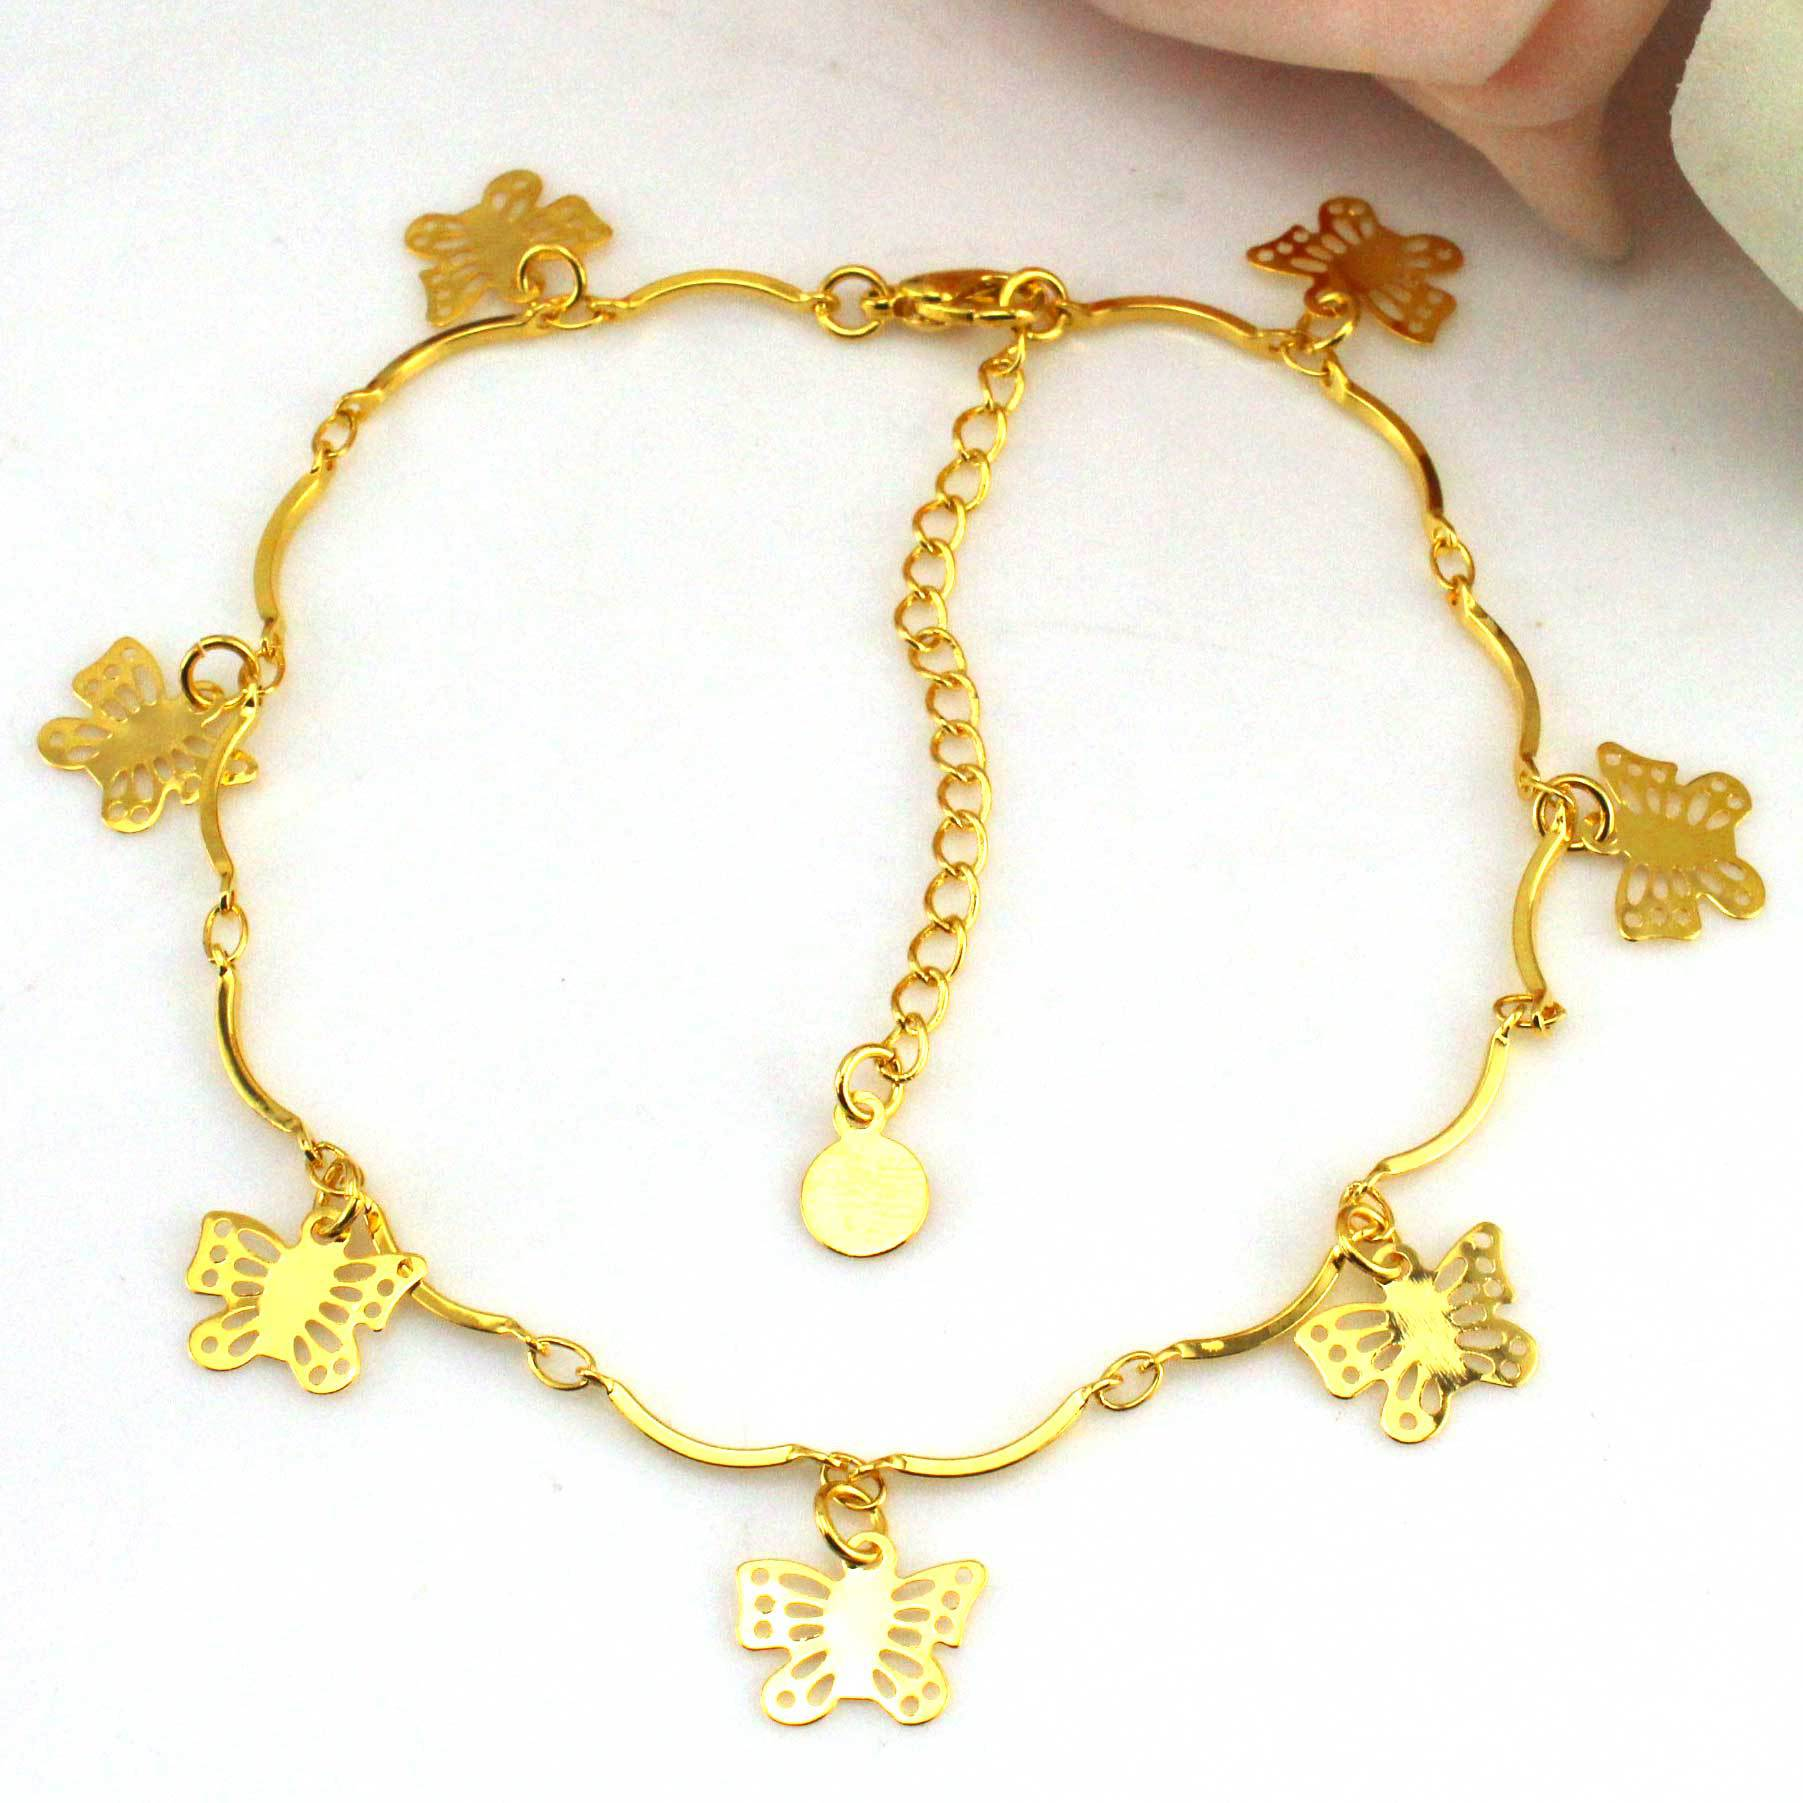 unique anklet corazon wrist products evil pulso pie corazones set de gold oro bracelet bracelets charms design foot and jewelry women with filled ankle heart